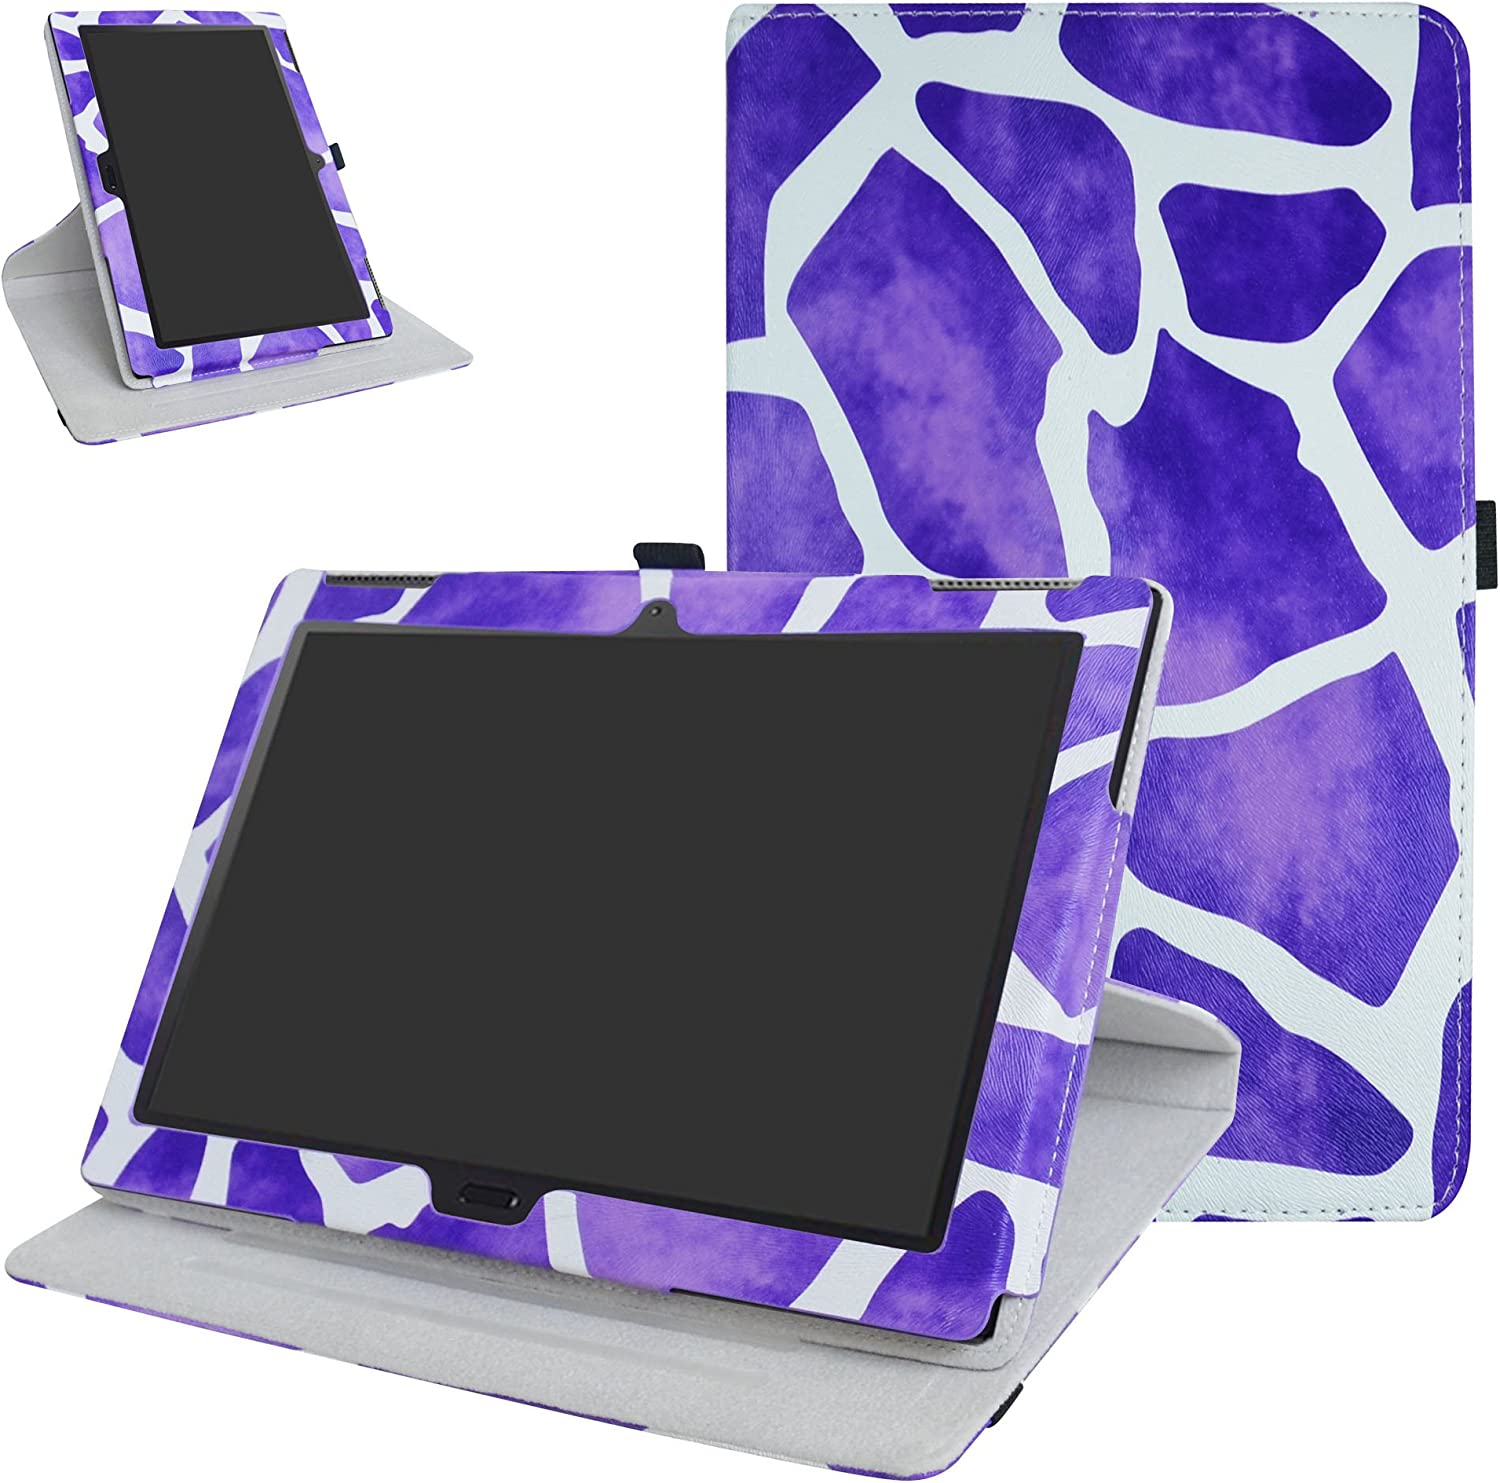 "Lenovo Moto tab X704A / Tab 4 10 Plus Rotating Case,Mama Mouth 360 Degree Rotary Stand with Cute Pattern Cover for 10.1"" Lenovo Moto tab X704A / Tab 4 10 Plus Tablet,Giraffe Purple"